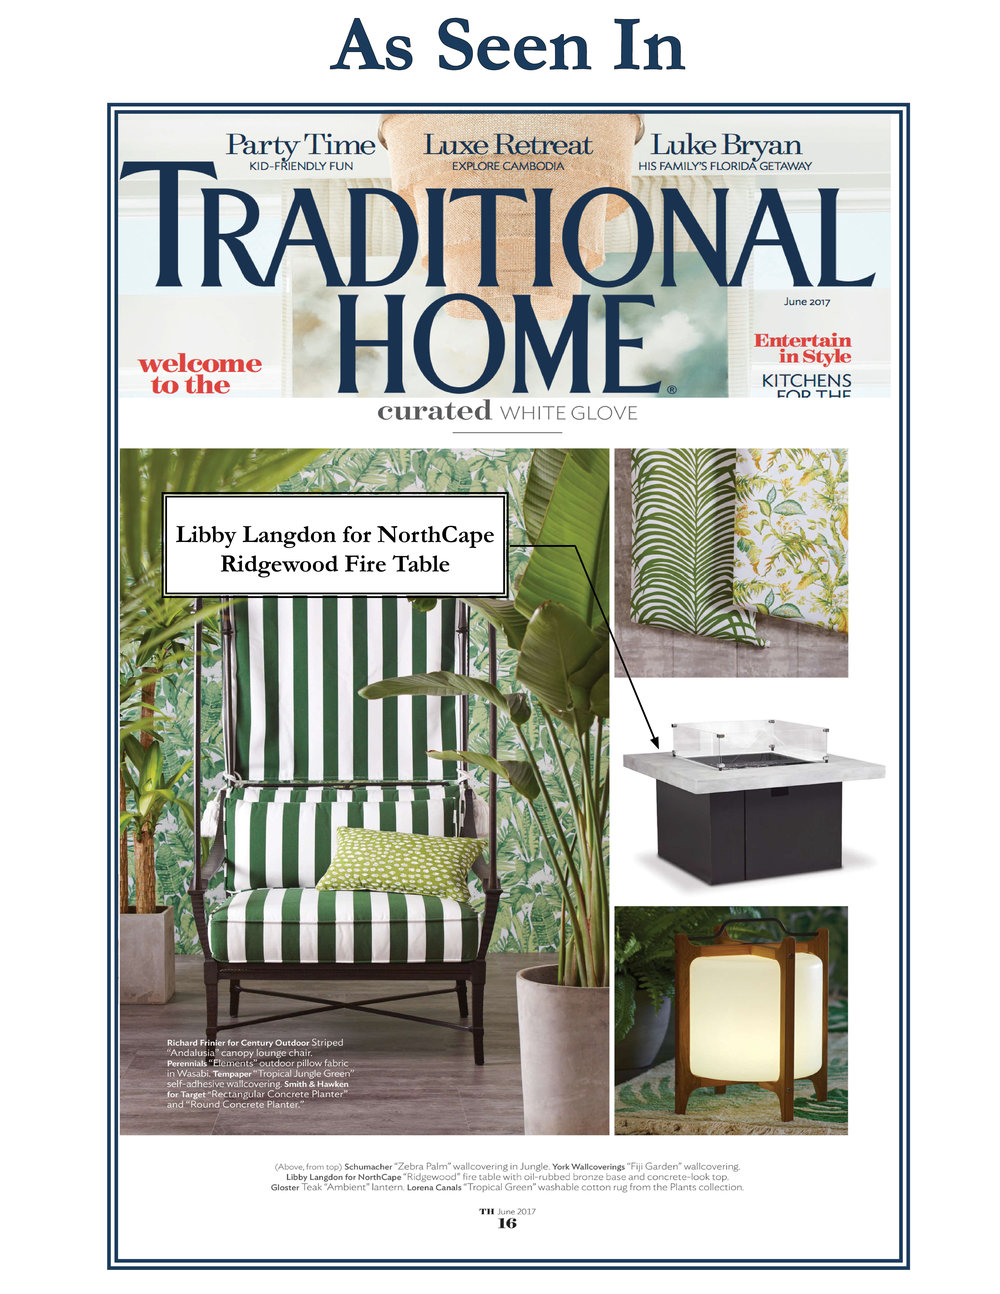 ... Magazine For Featuring My Ridgewood Fire Table From My Outdoor Furniture  Collection For NorthCape In The Current Issue!! So Much Fun To See It In  The ...